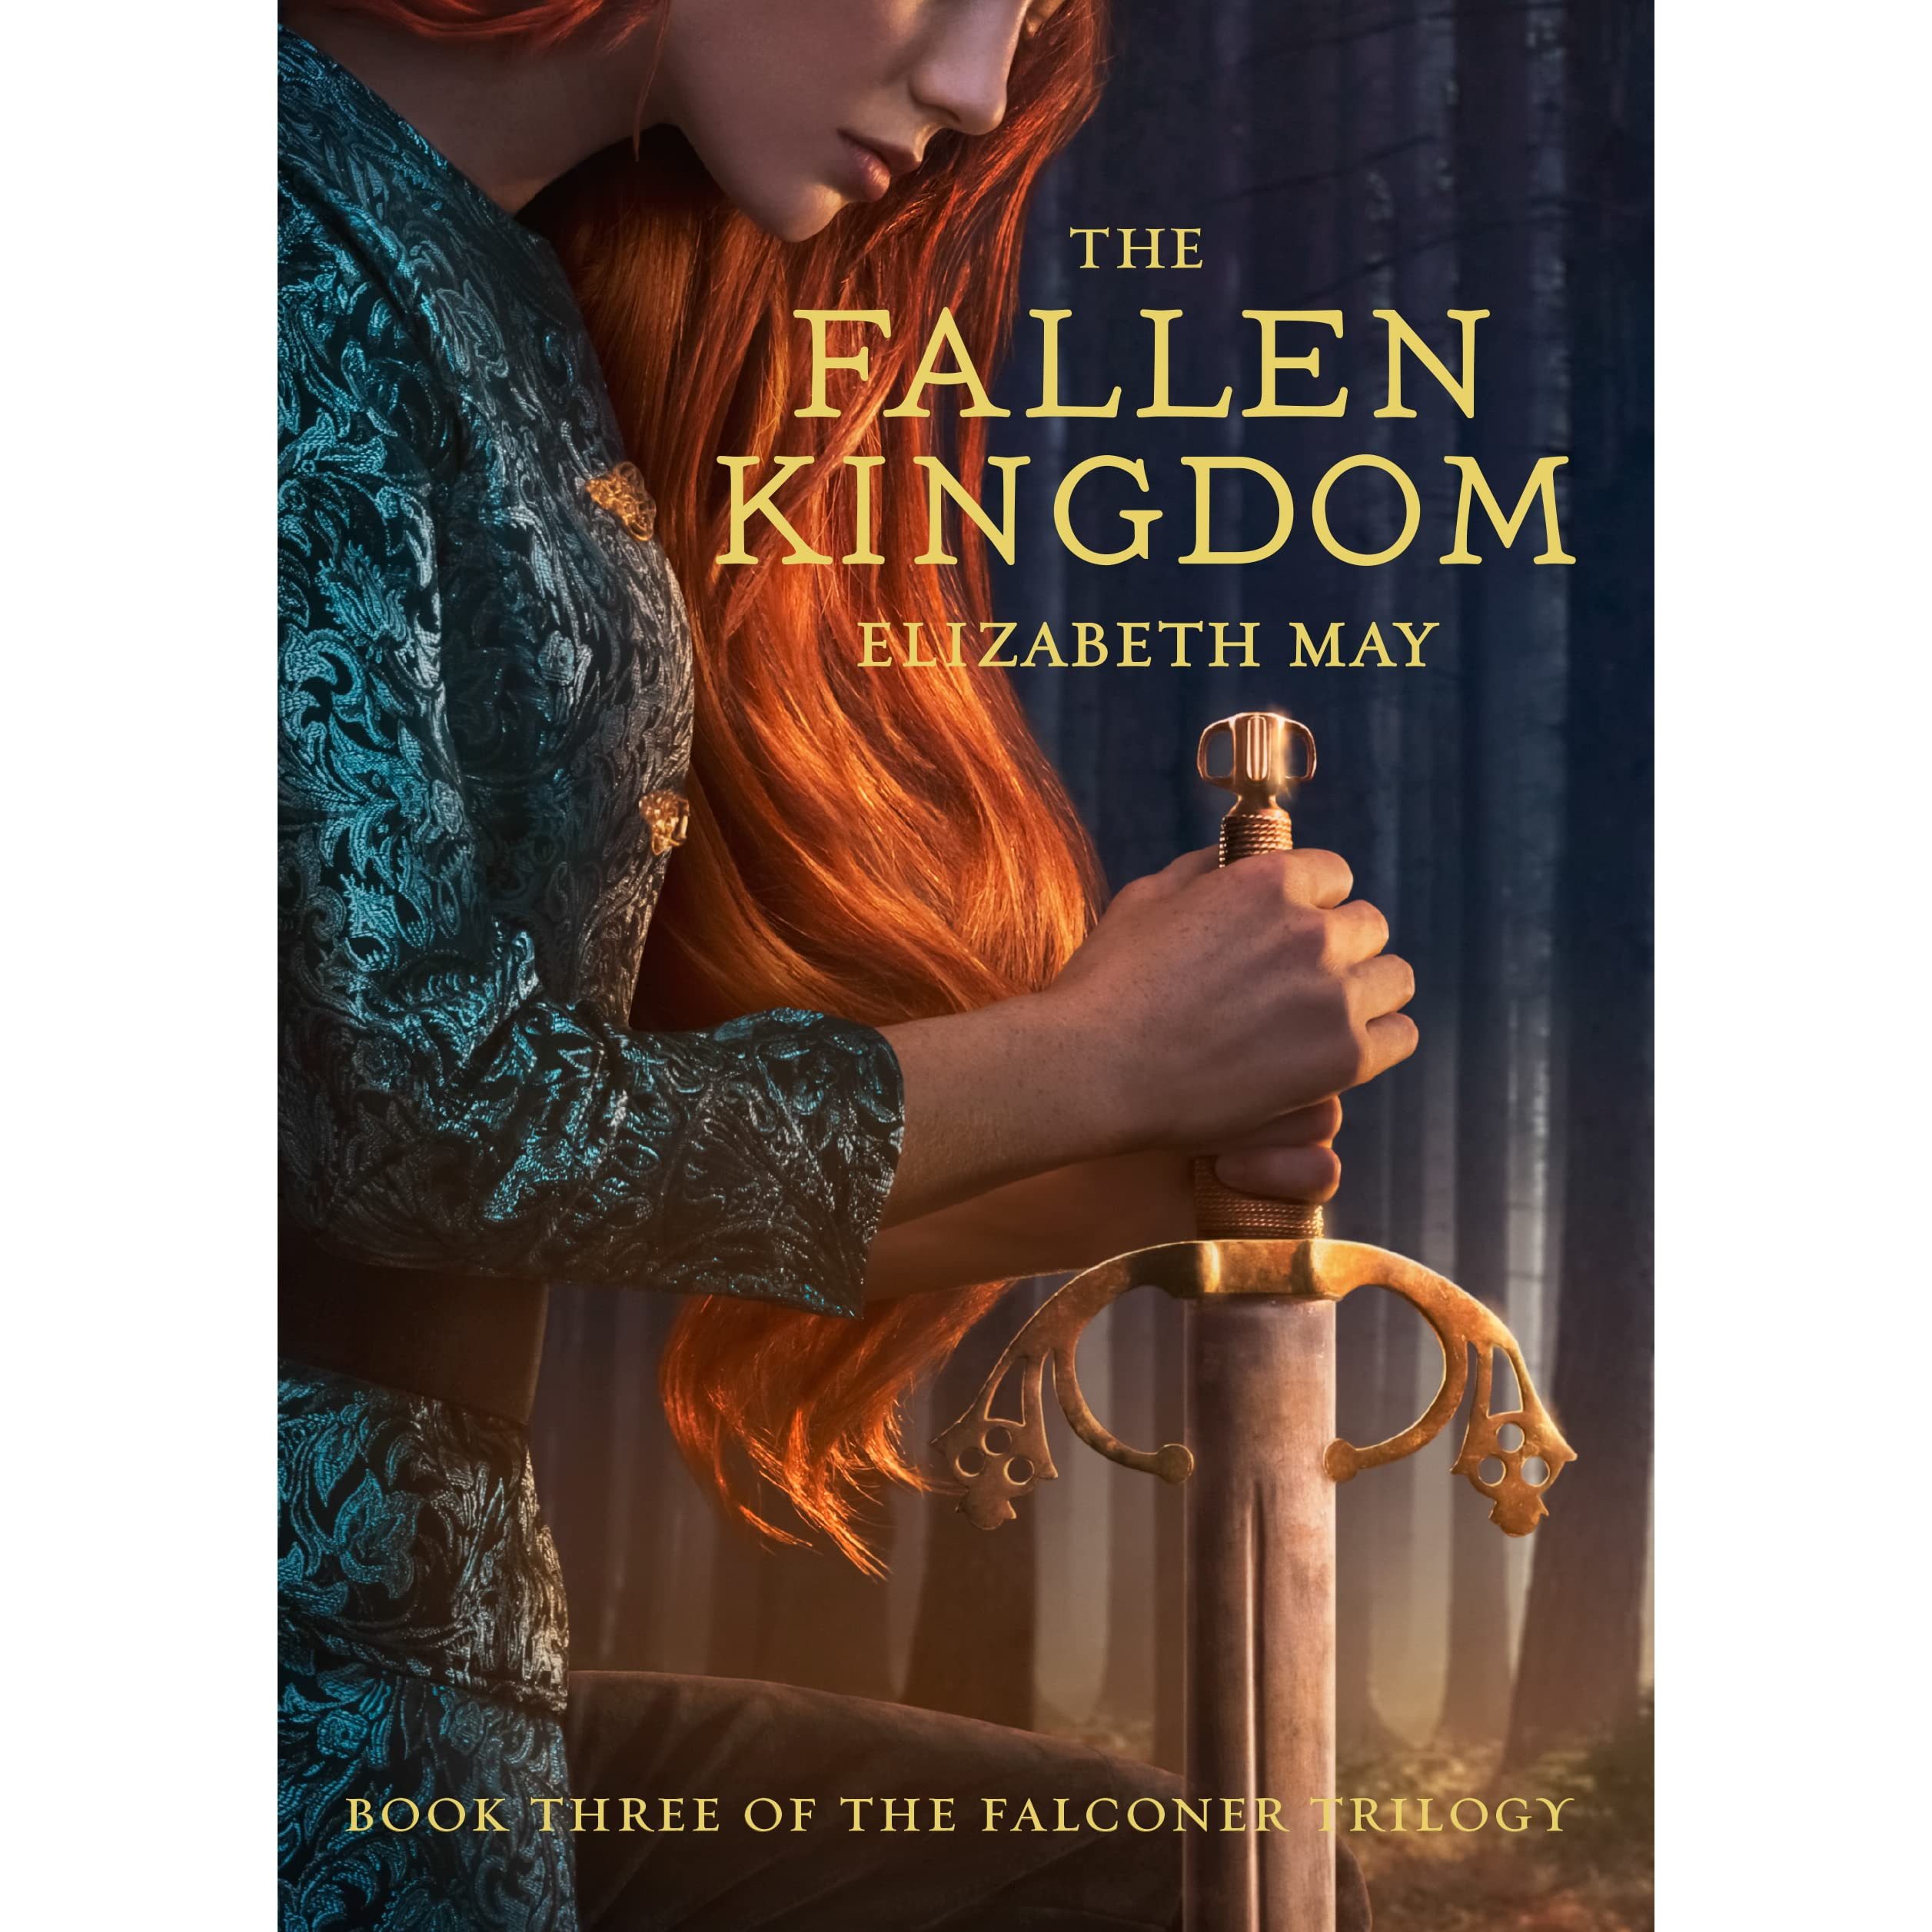 Kingdom Manga Goodreads: The Fallen Kingdom (The Falconer, #3) By Elizabeth May